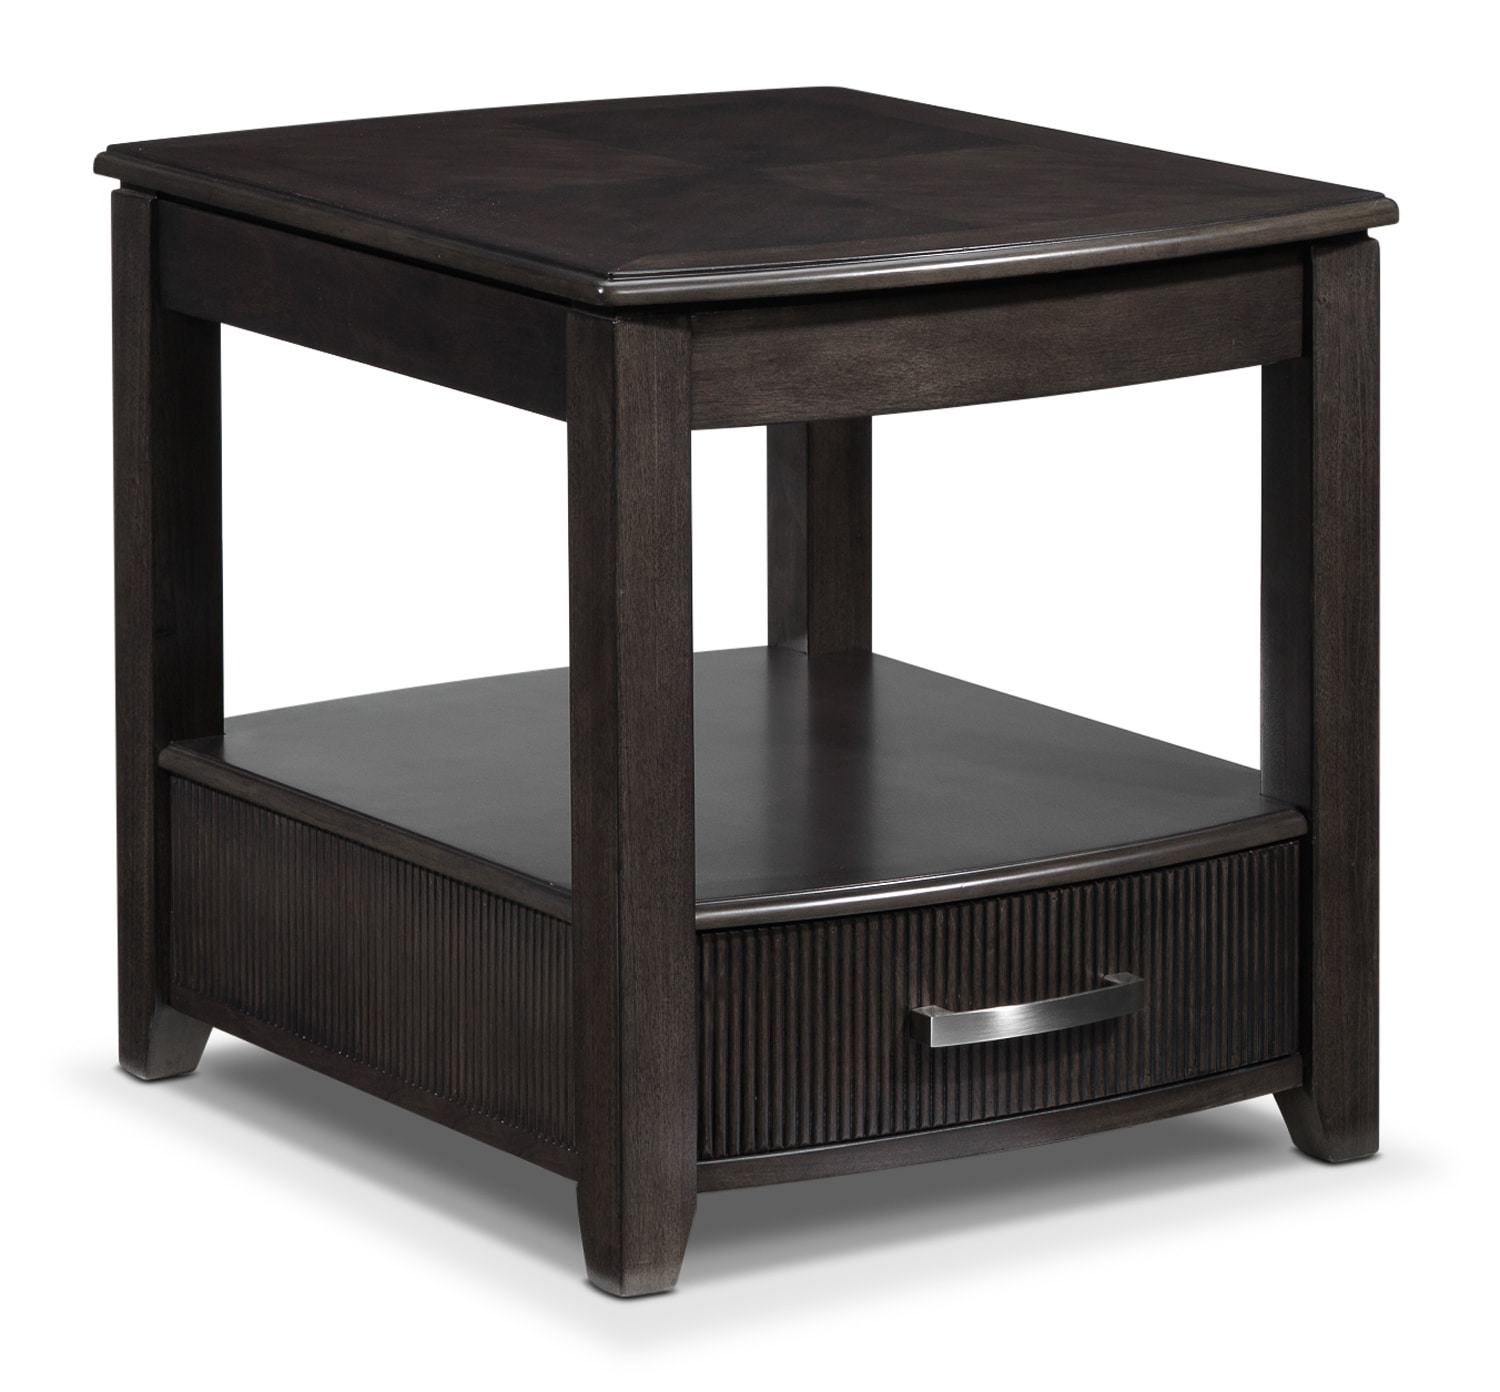 Joanna II Occasional Tables Collection Leons : 288837 from leons.ca size 1500 x 1392 jpeg 195kB